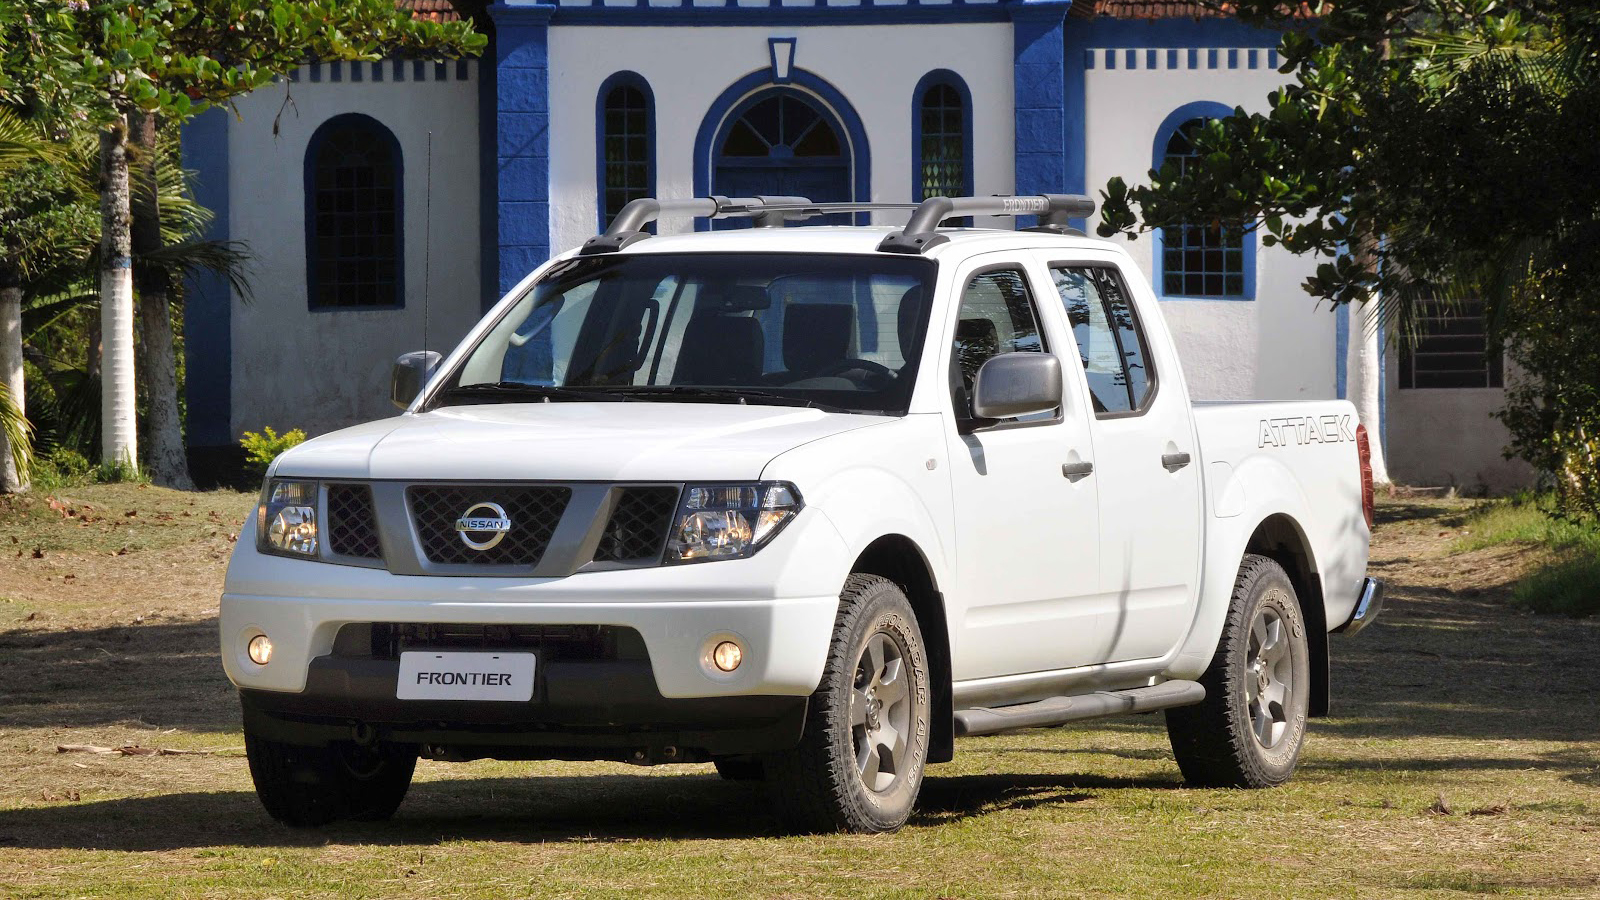 nissan frontier 2013 una pickup ideal para el trabajo y. Black Bedroom Furniture Sets. Home Design Ideas